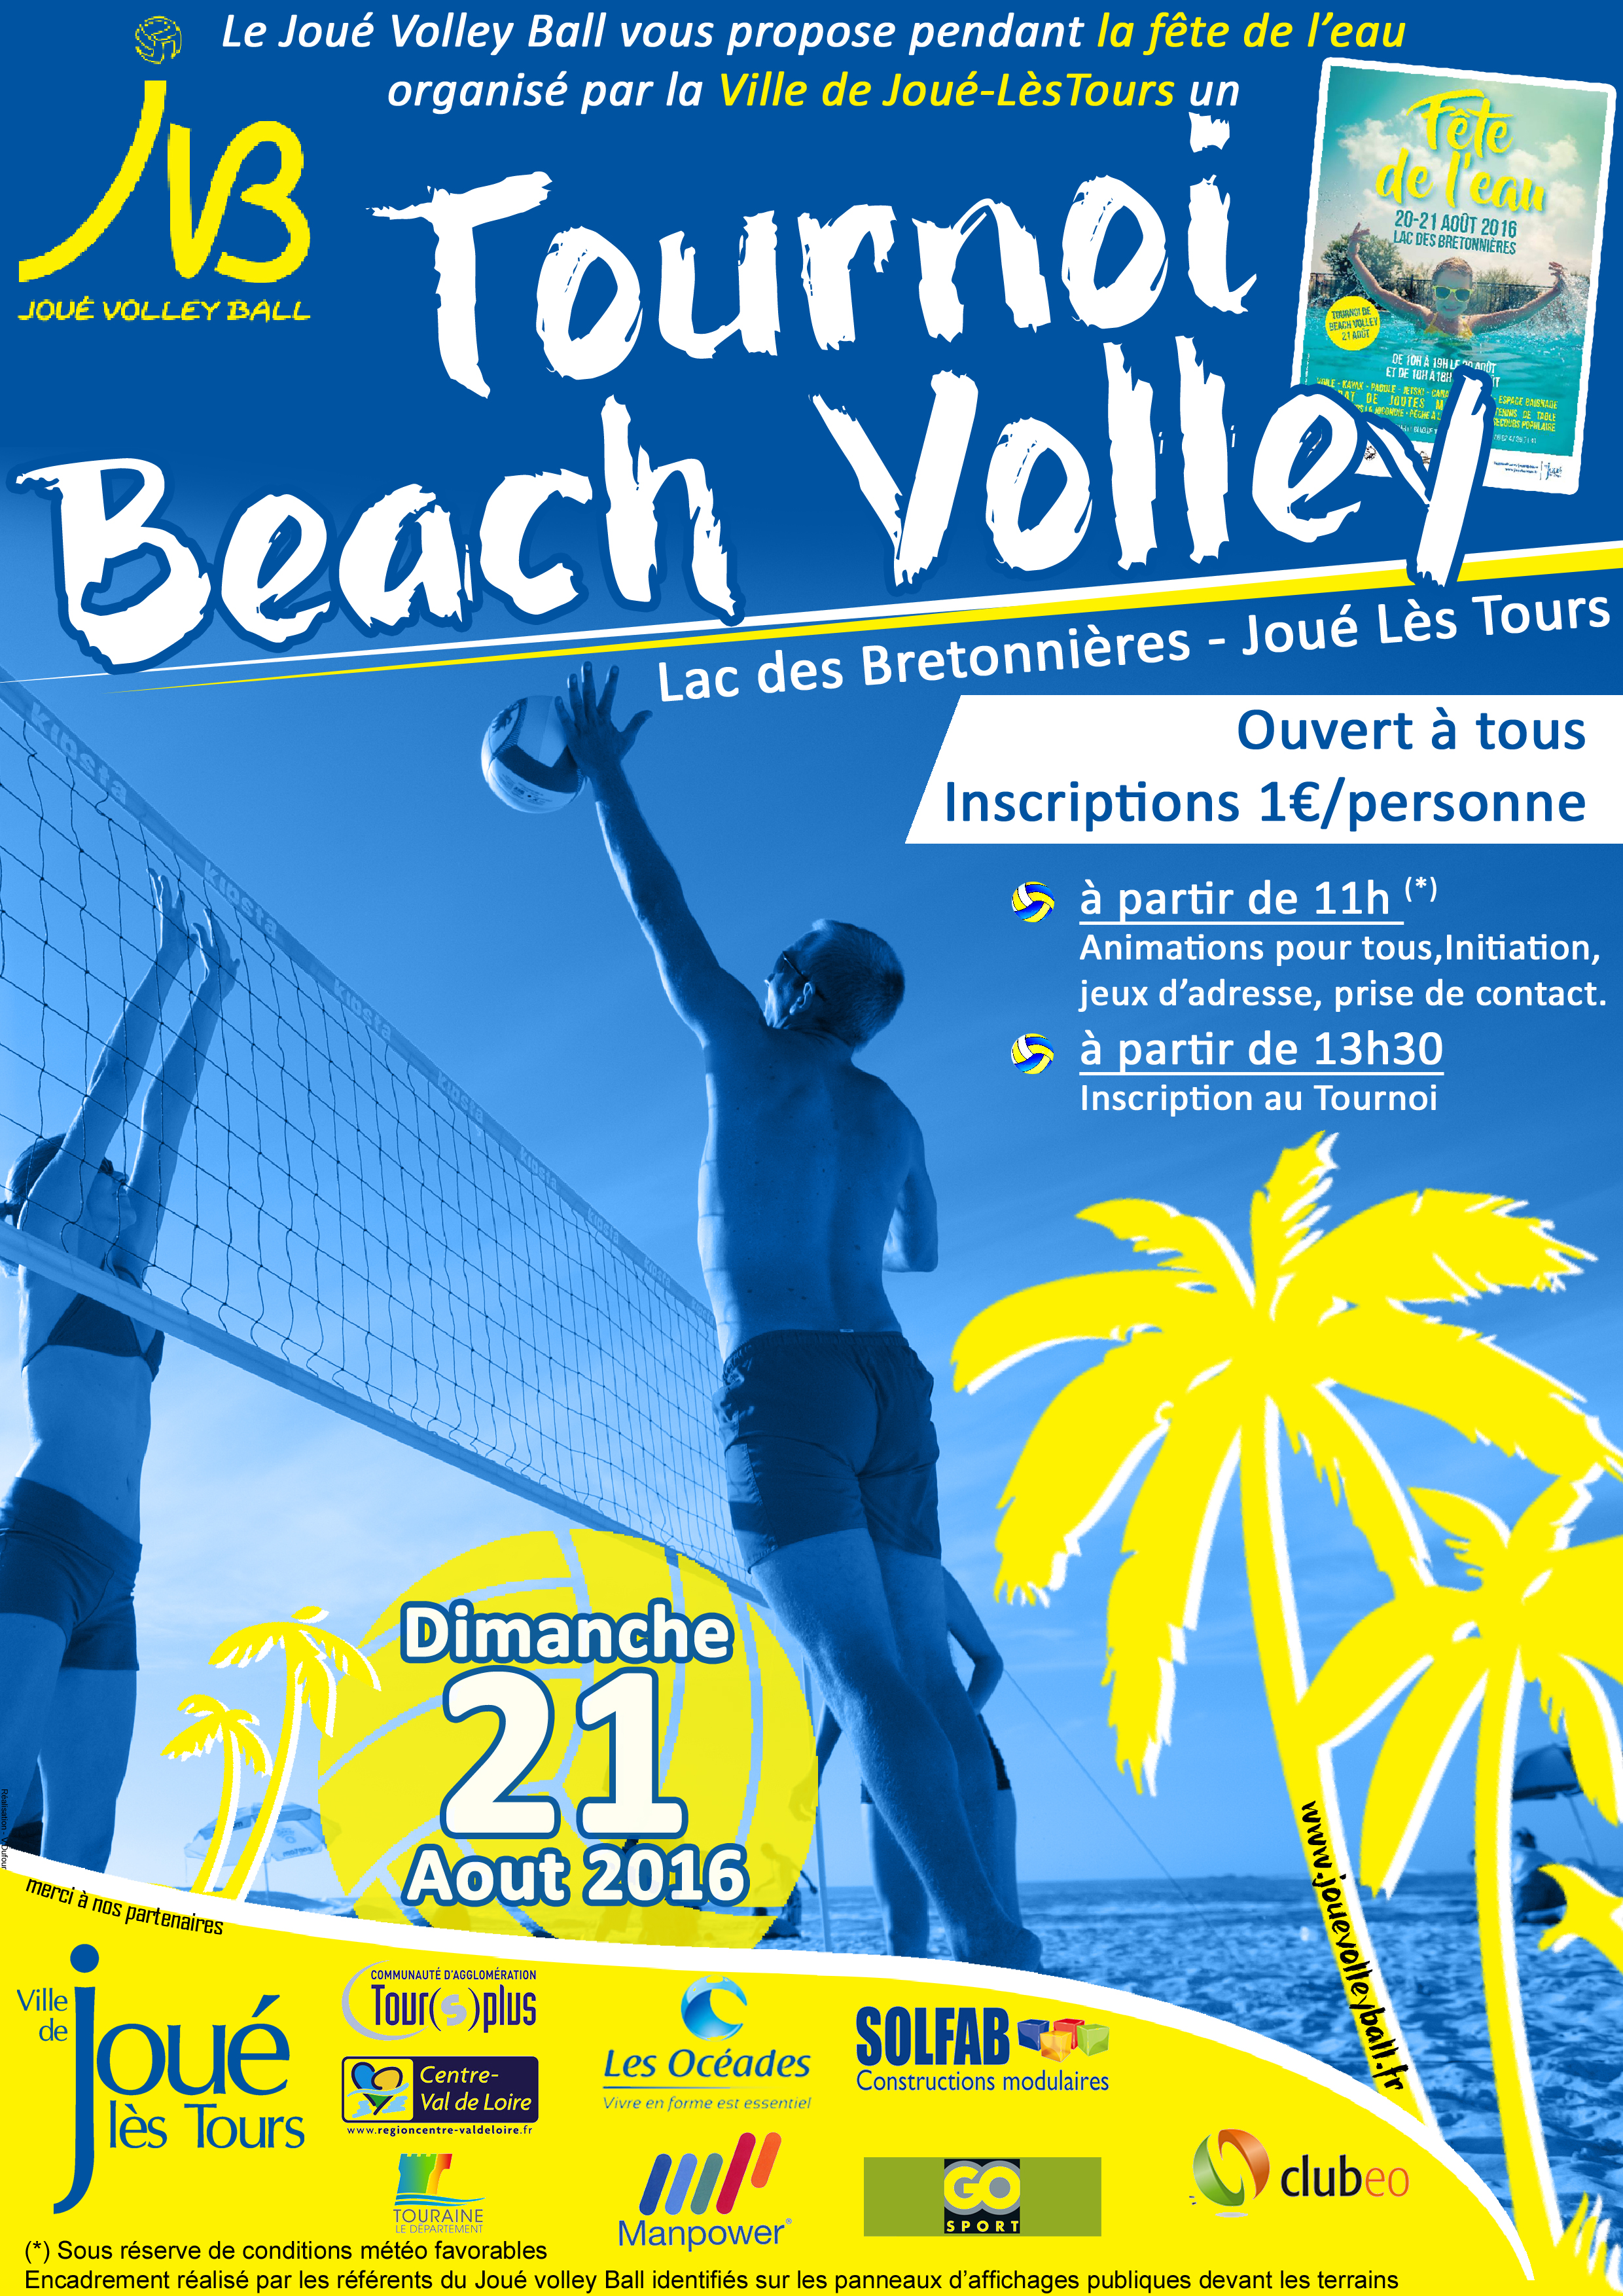 Tournoi de Beach Volley Aout 2016